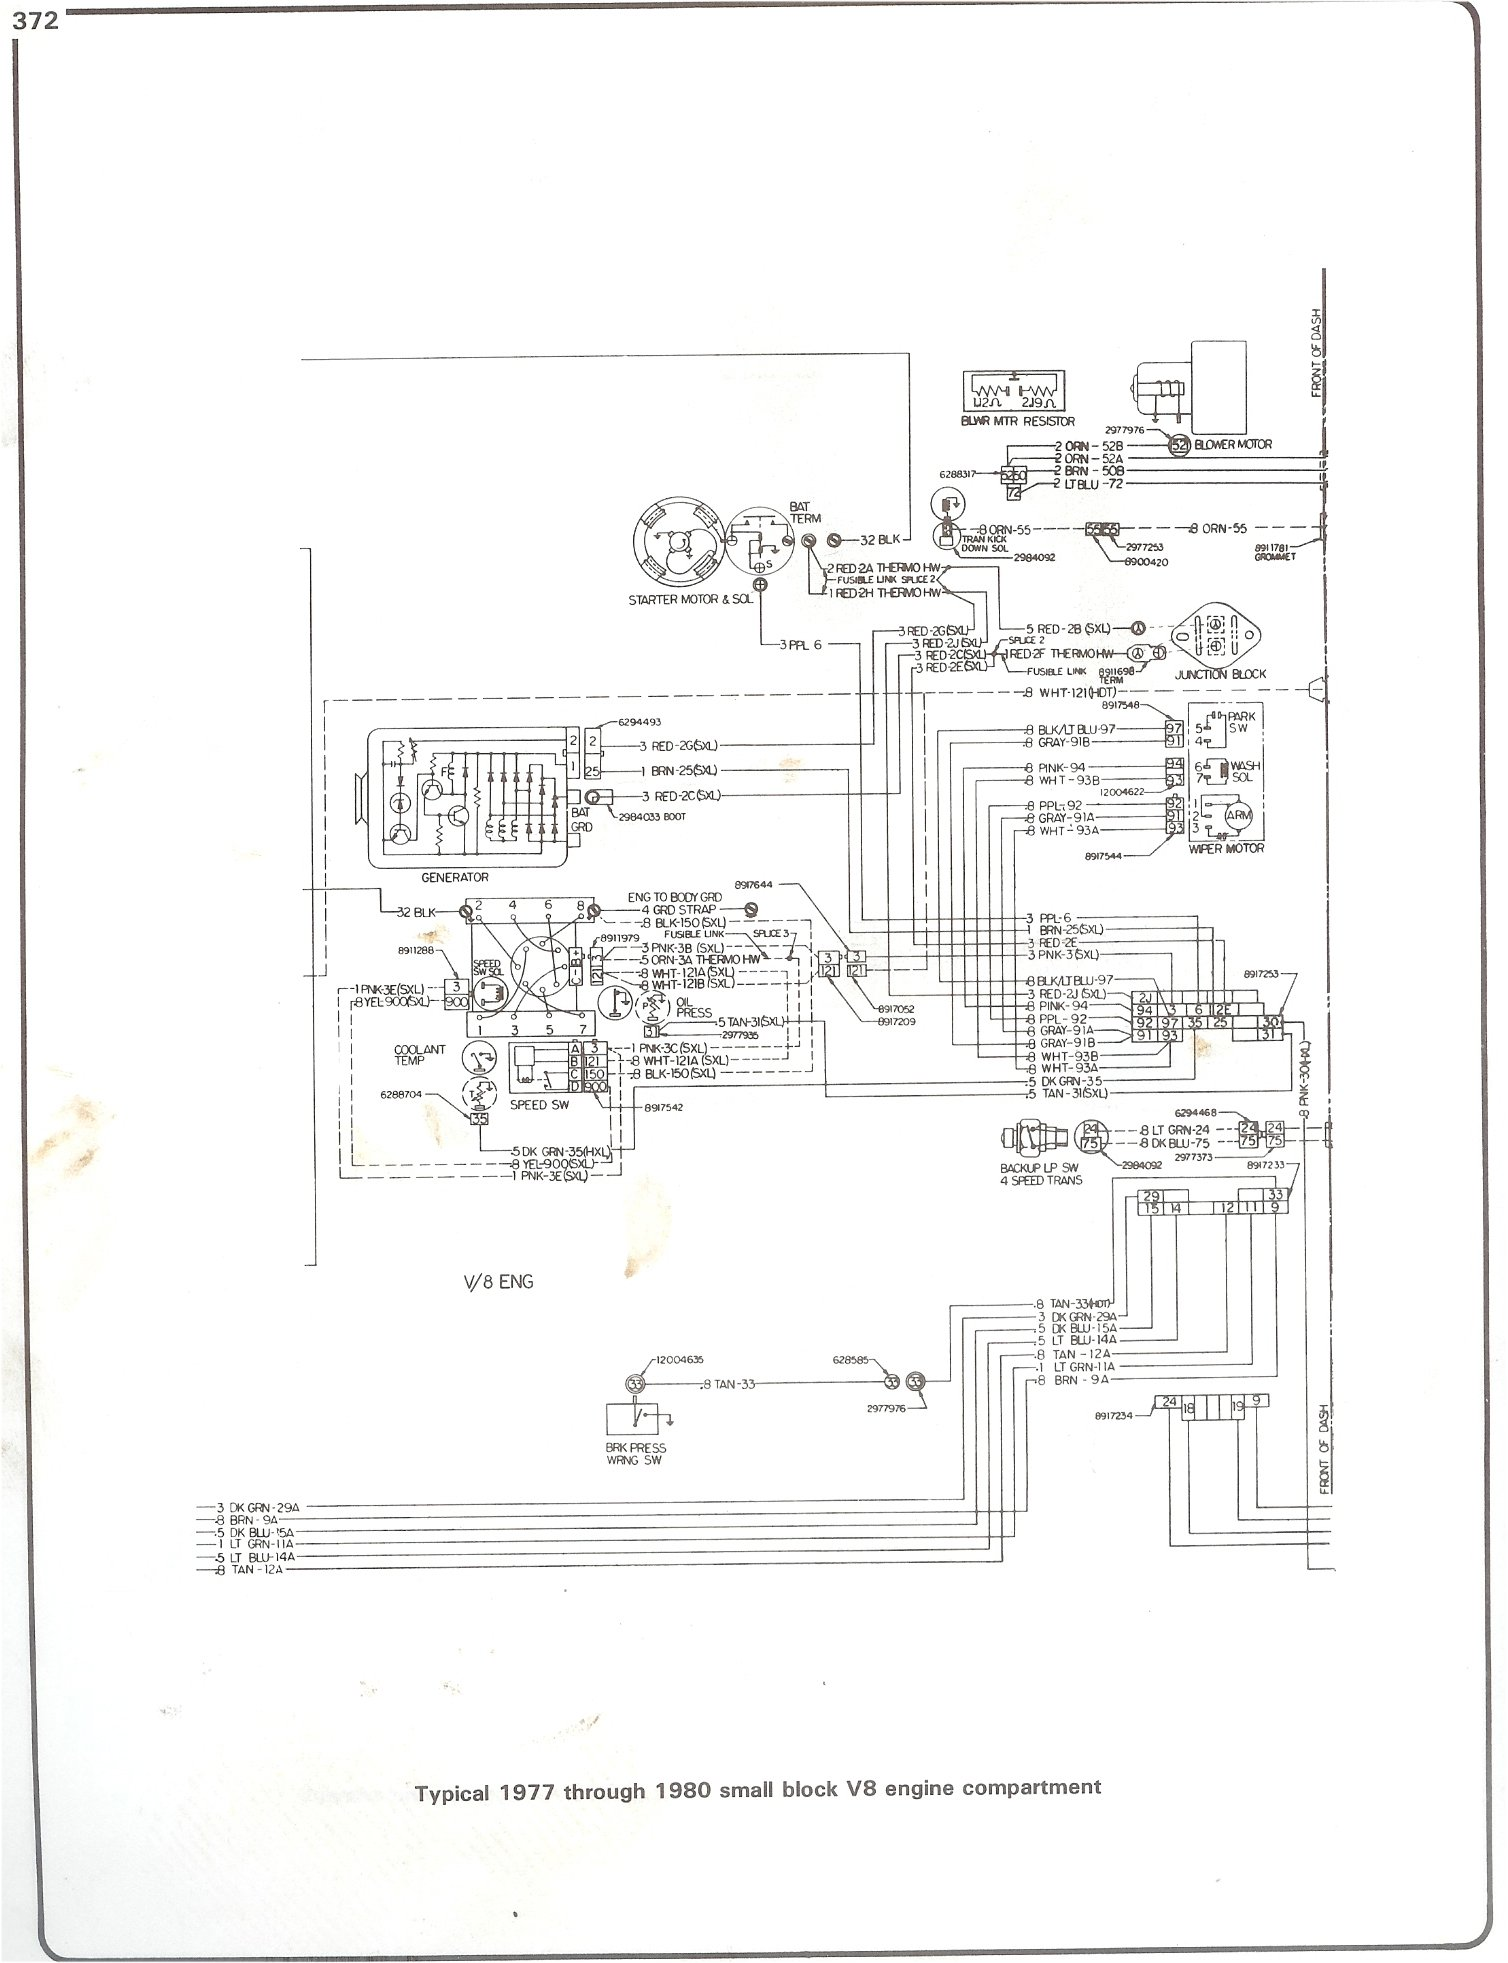 73 chevy truck wiring diagram blinker 73 chevy c10 wire diagram 1977 chevy steering column wiring diagram | wiring library